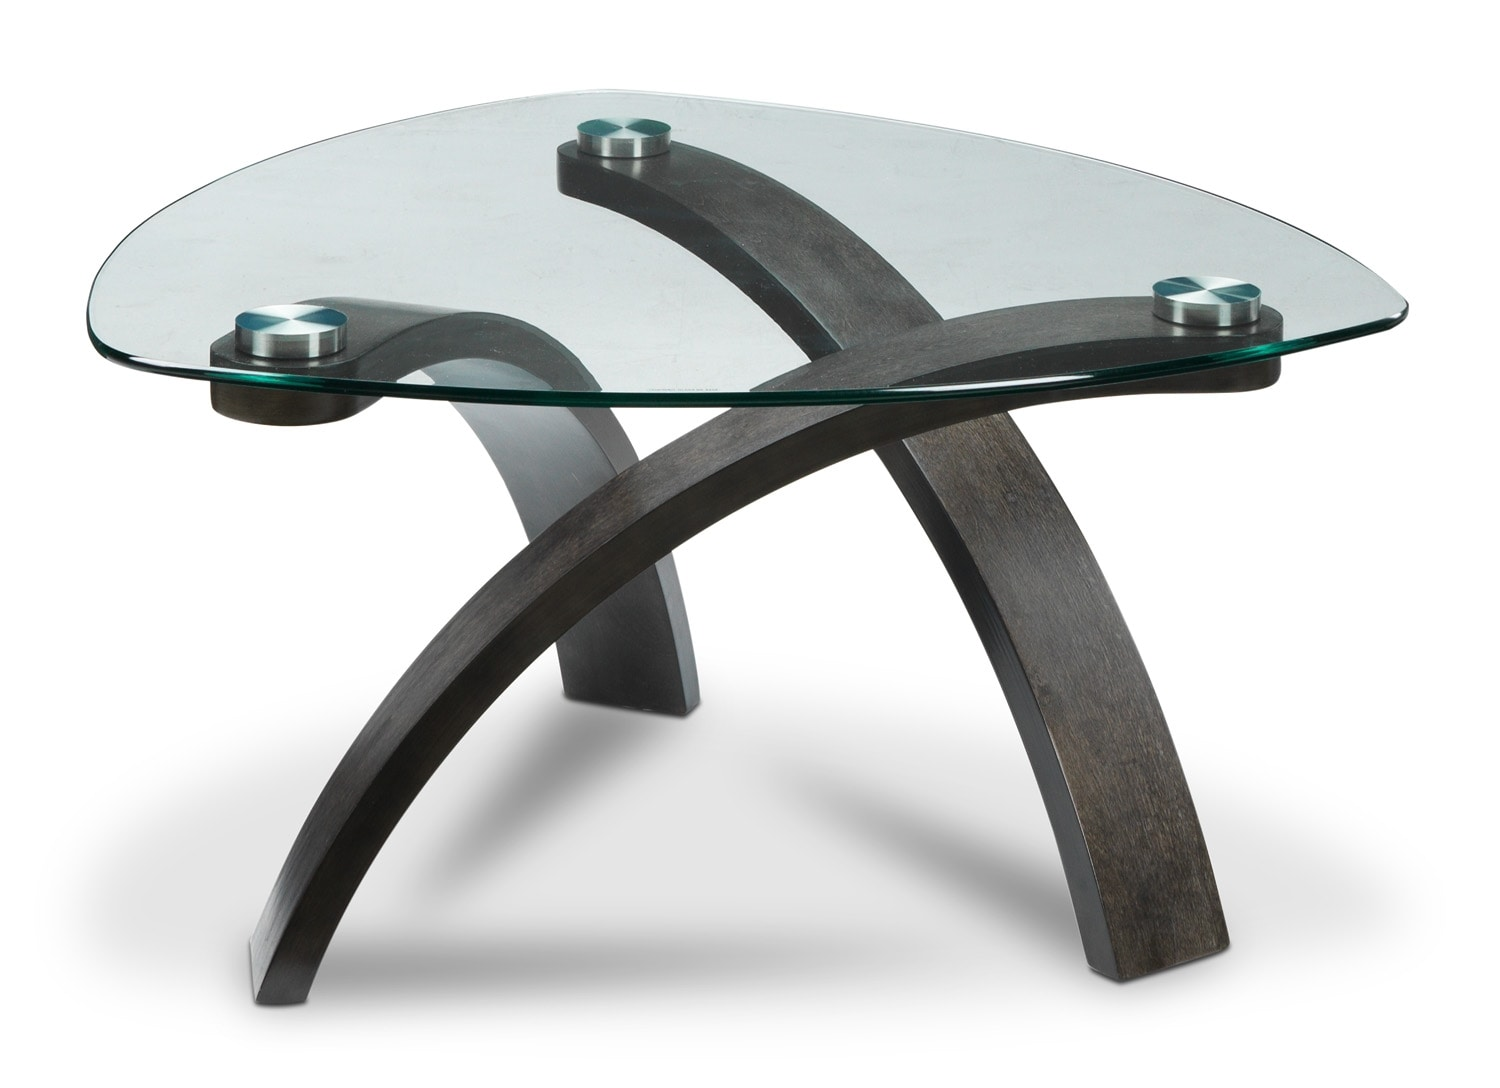 Azalea Coffee Table - Charcoal